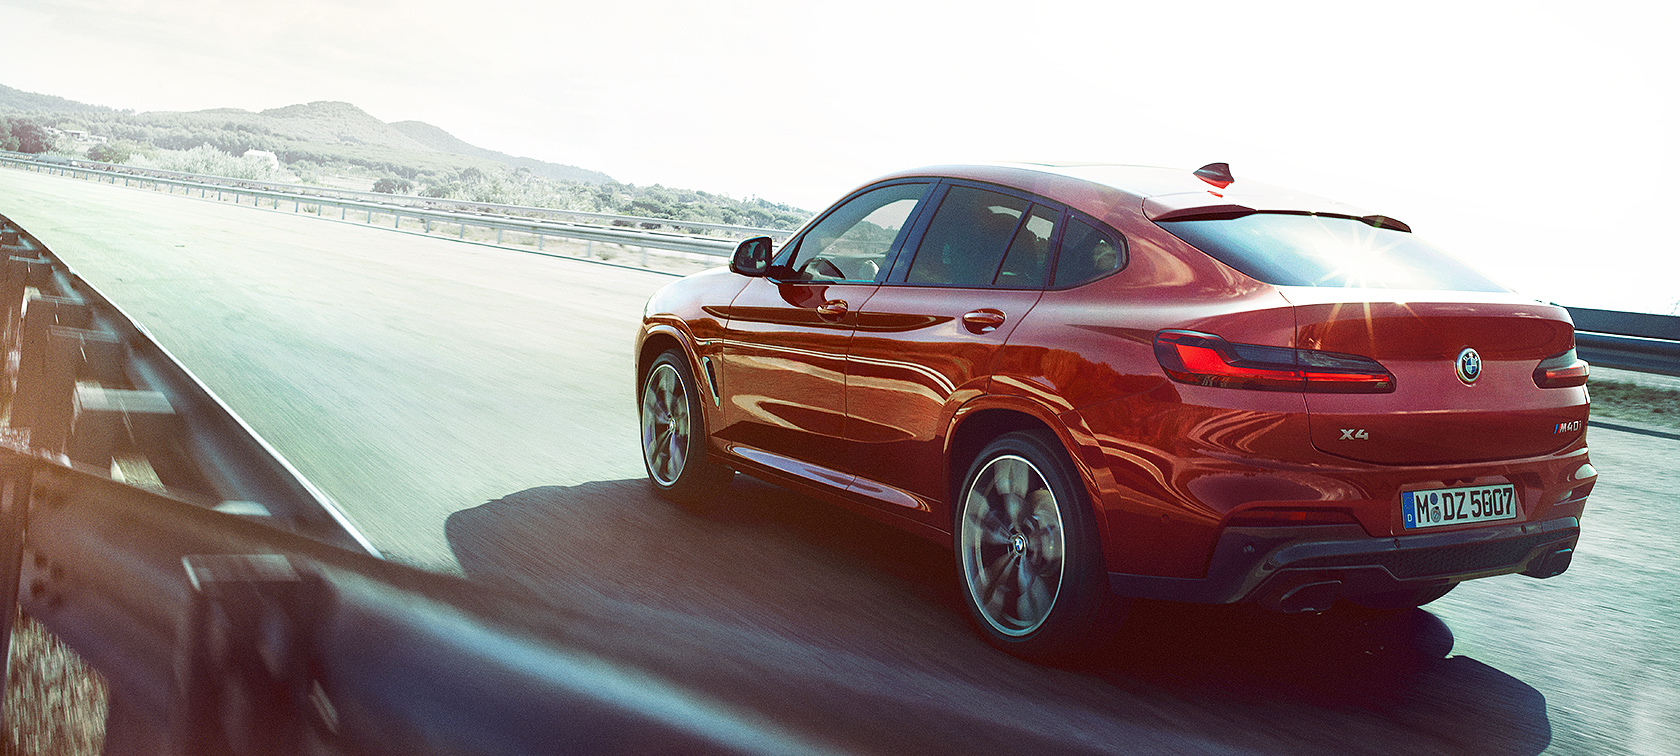 Bmw X4 Sporty And Elegant Crossover Bmw Canada